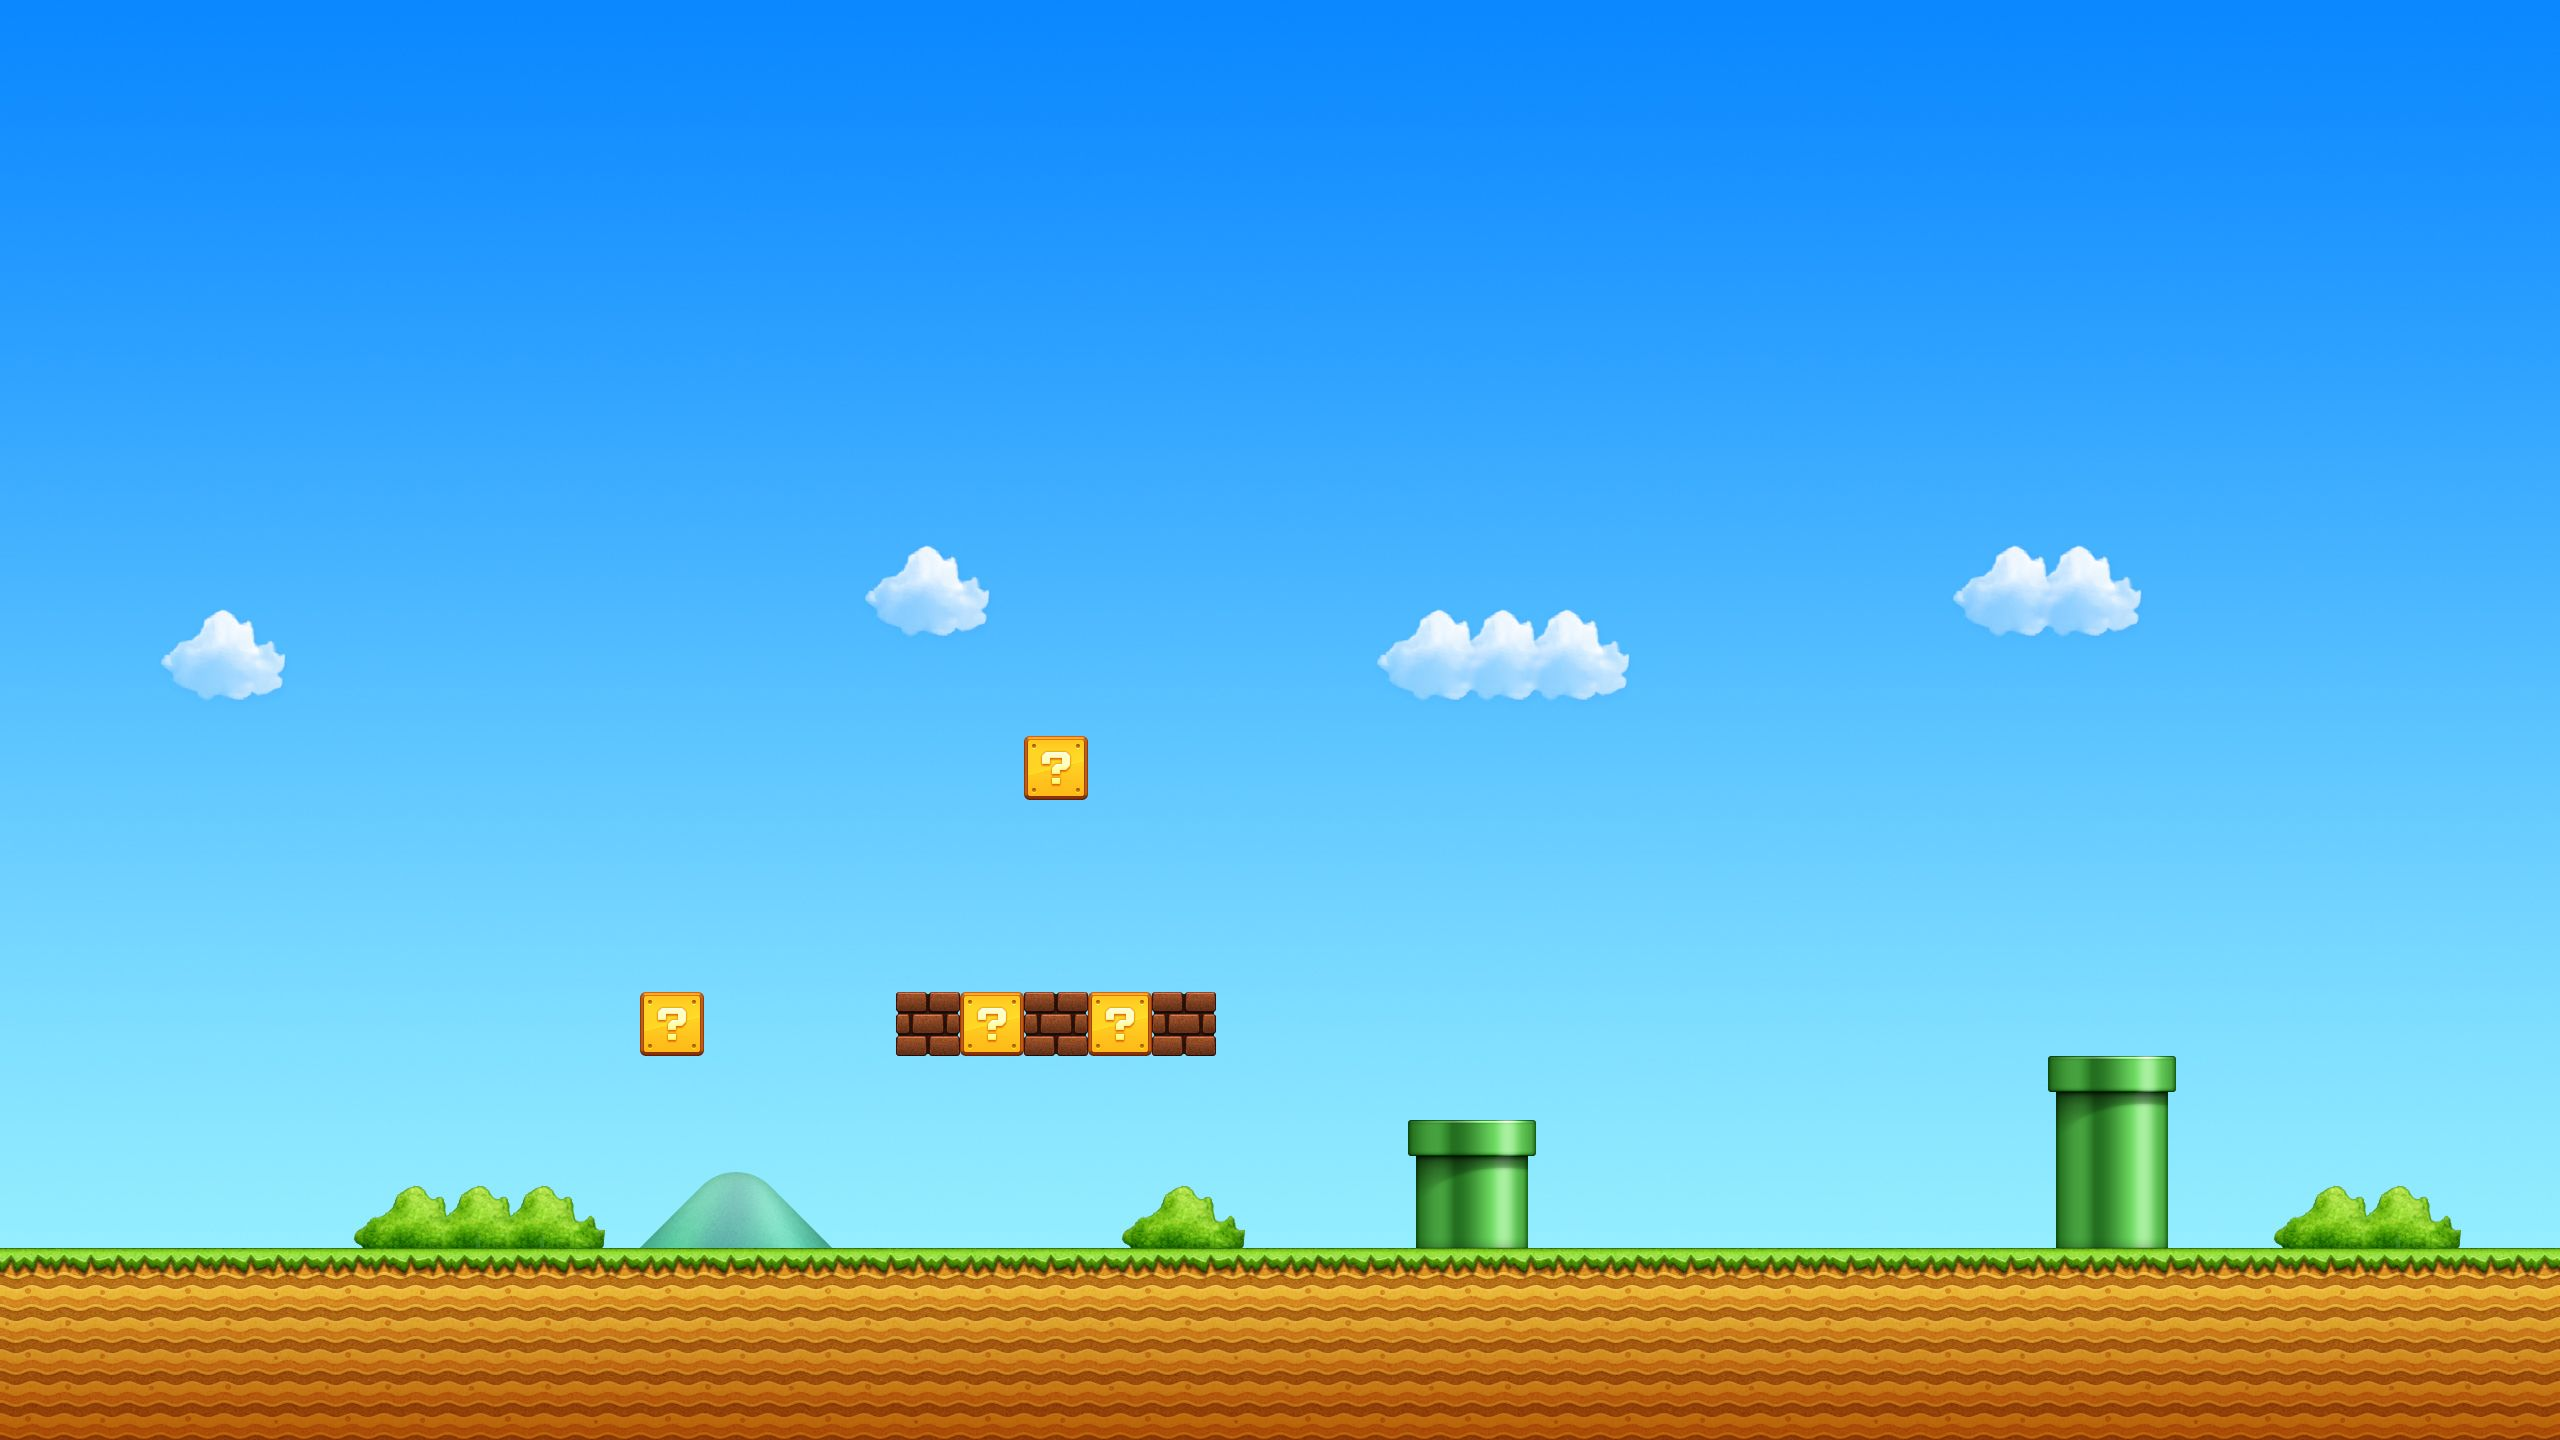 A Level From The Game Super Mario All Stars